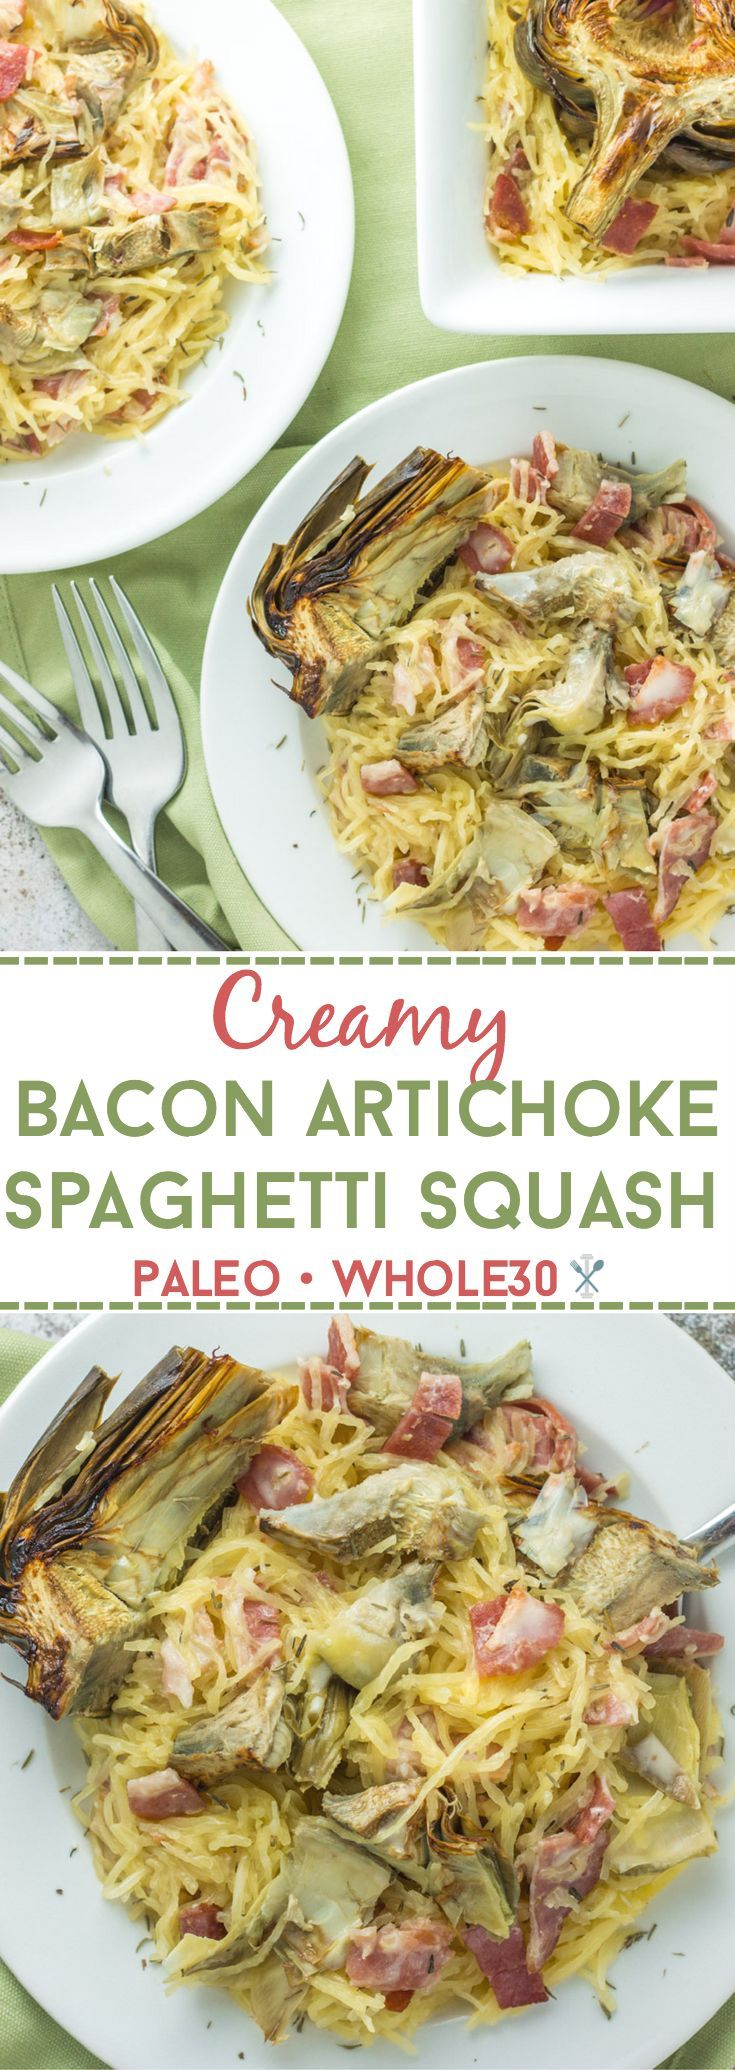 This whole30 and paleo creamy bacon artichoke spaghetti squash is the perfect comfort meal with savory bacon and fresh roasted artichokes from Ocean Mist Farms! Dairy free and gluten free.